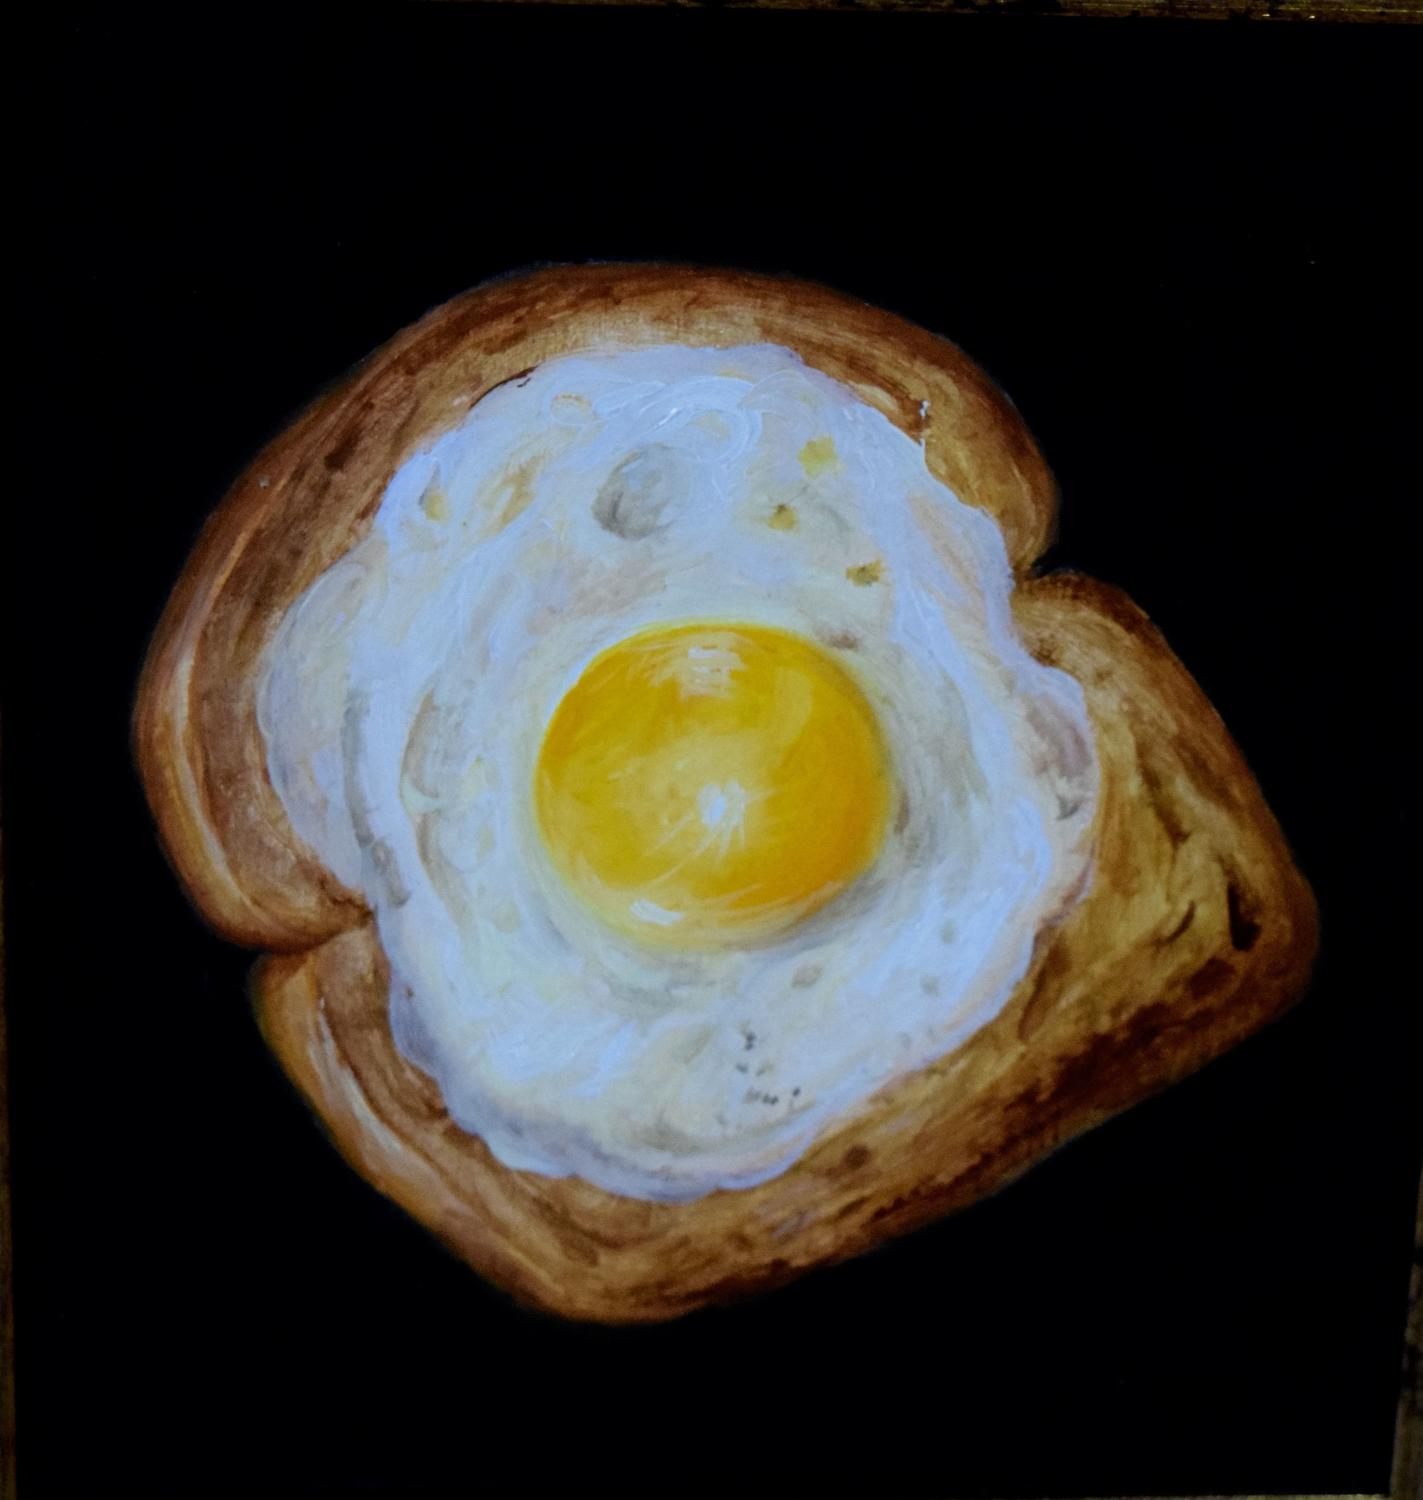 Fried egg on toast.